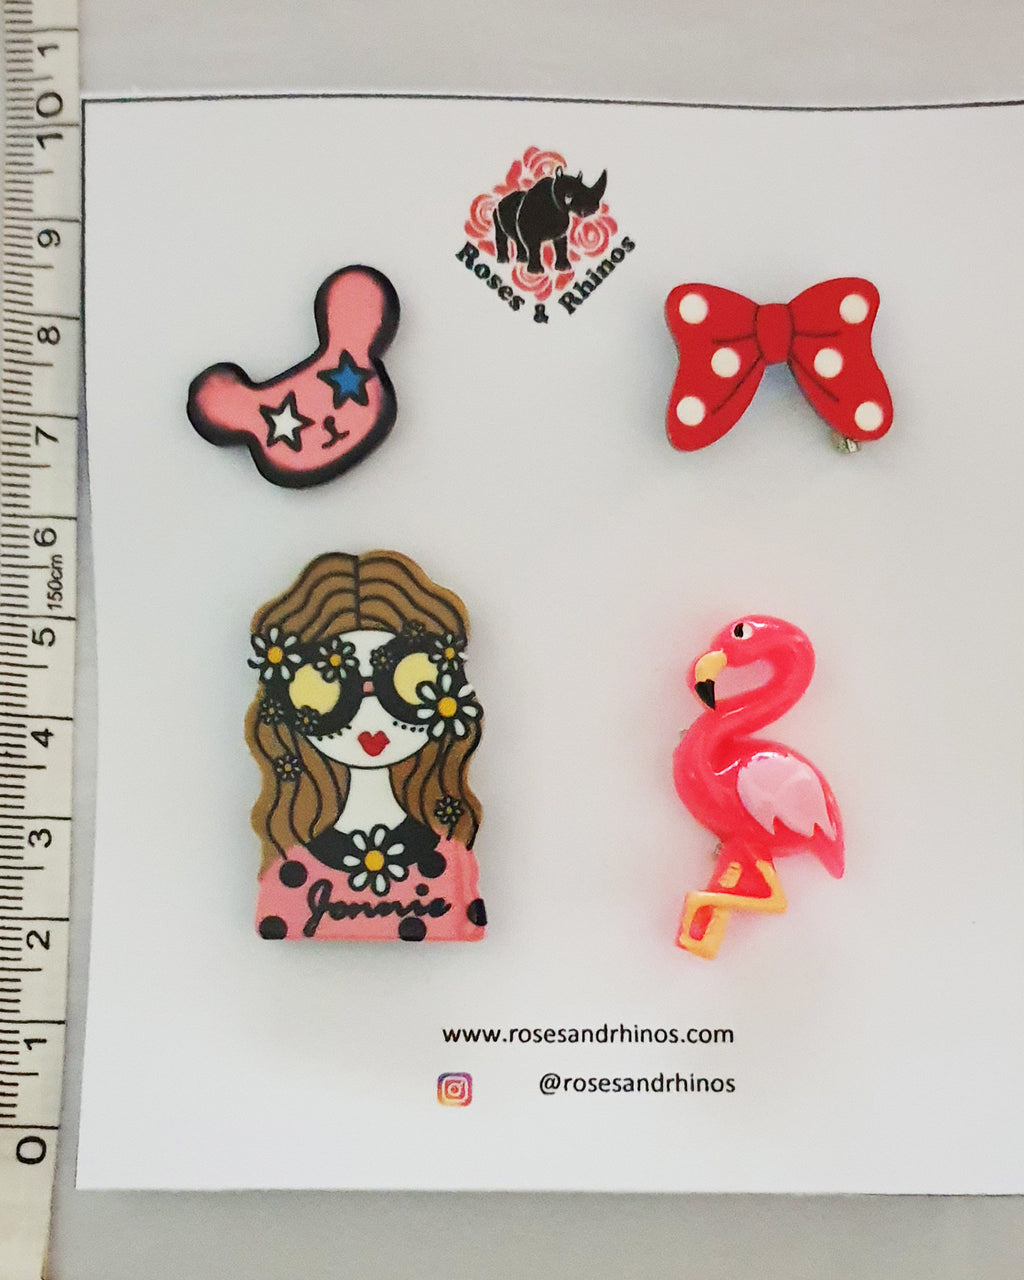 Flamingo Girl x 4 Pin - Roses & Rhinos